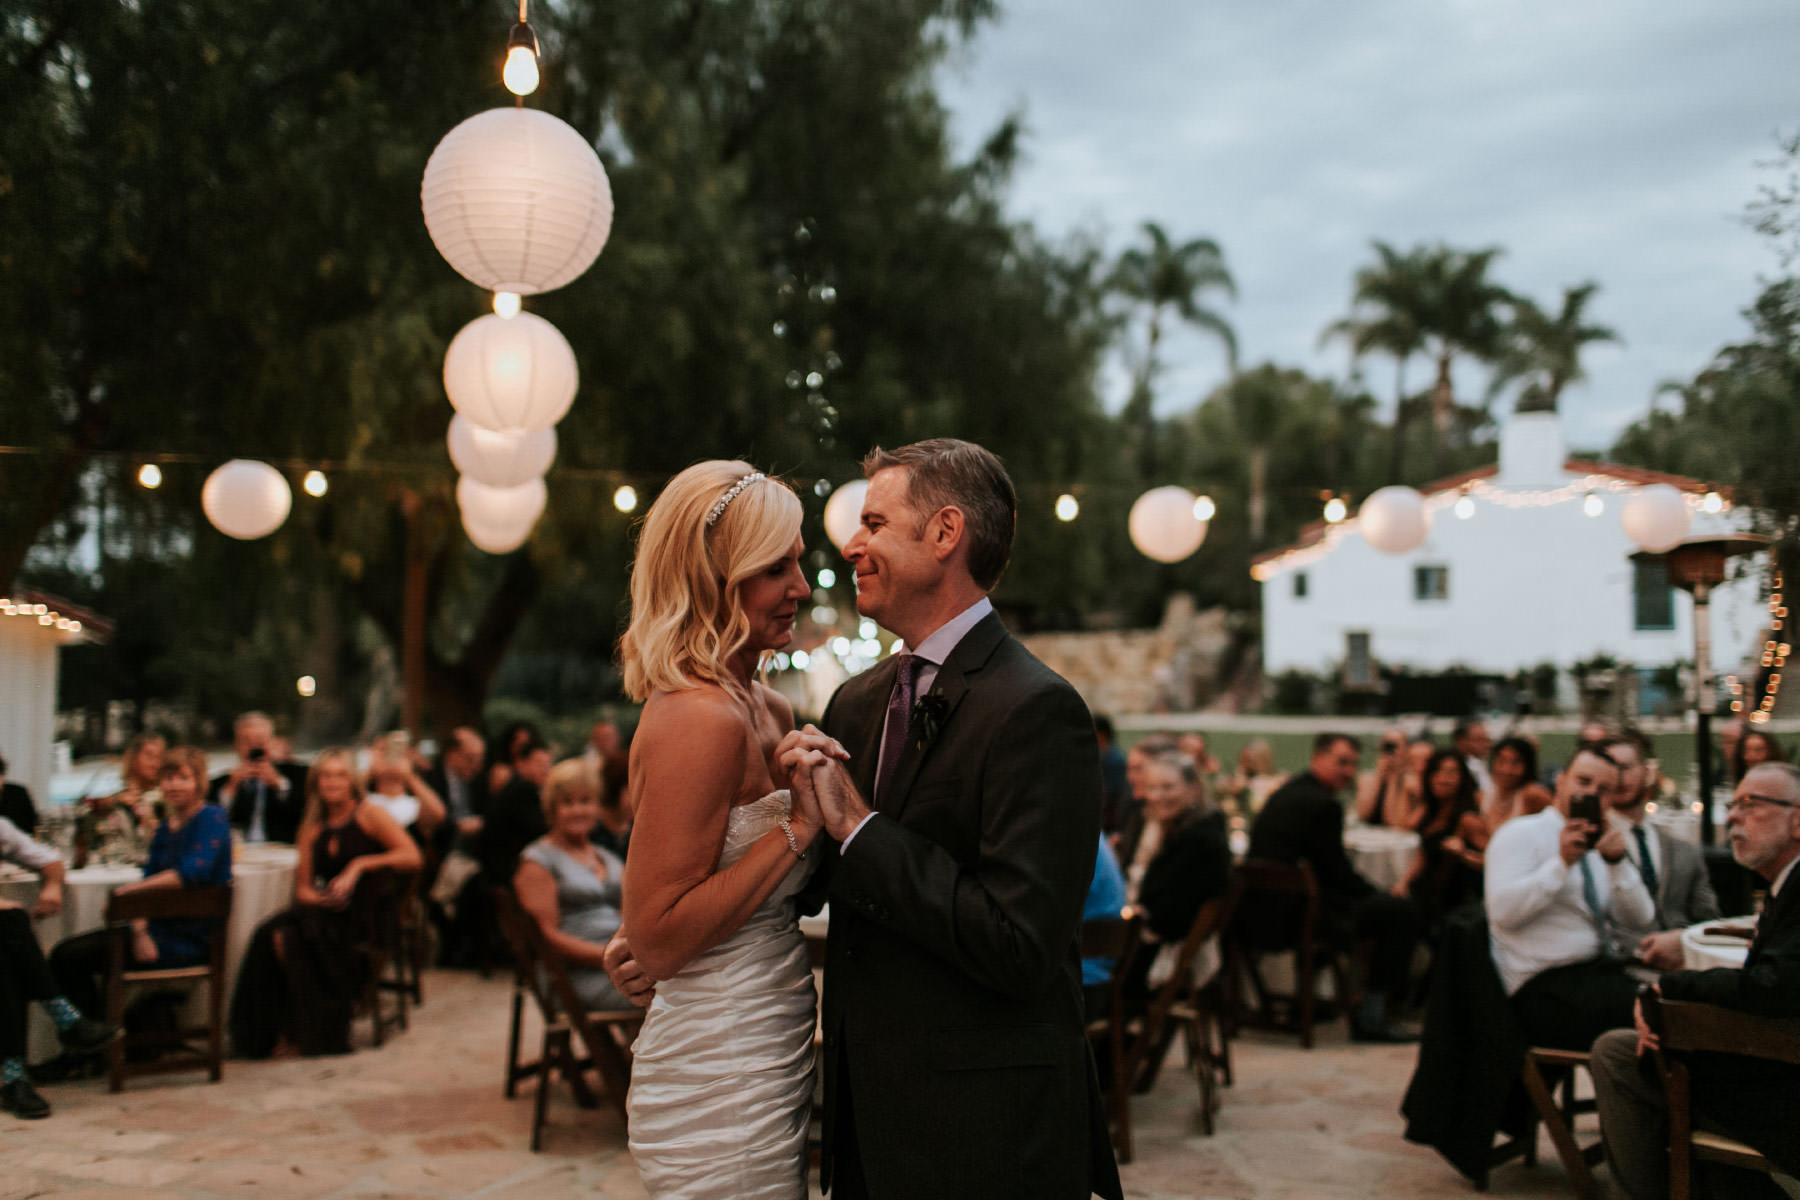 Bride and groom first dance with twinkle lights and paper lanterns